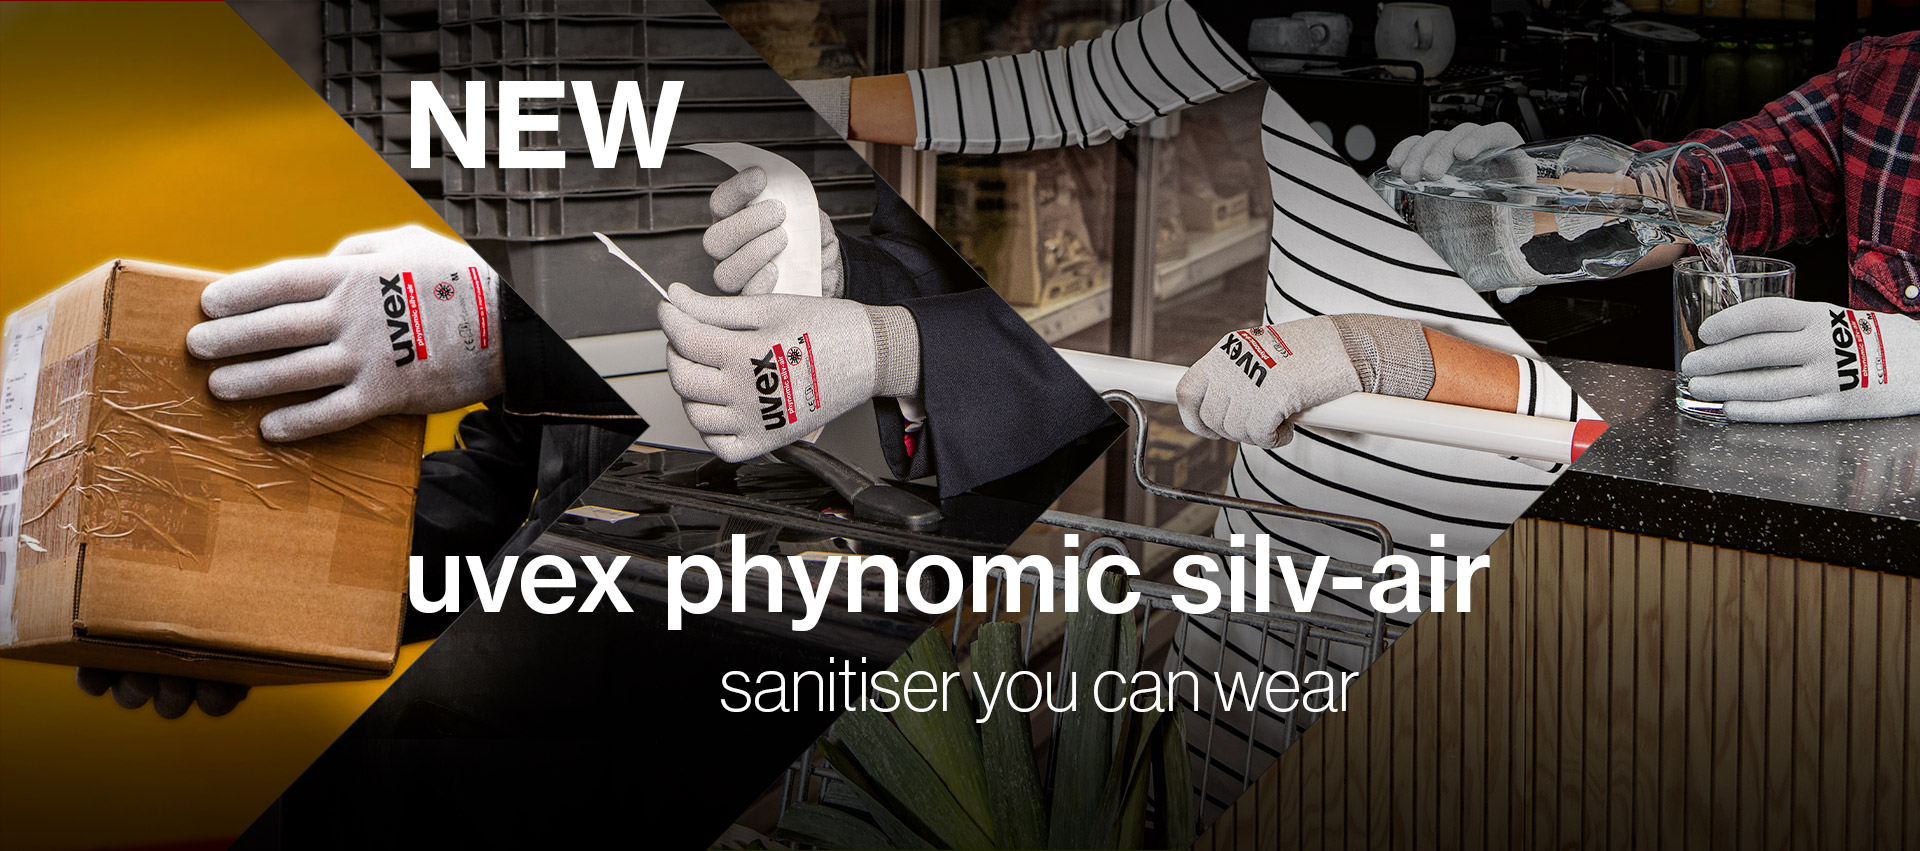 uvex phynomic silv-air